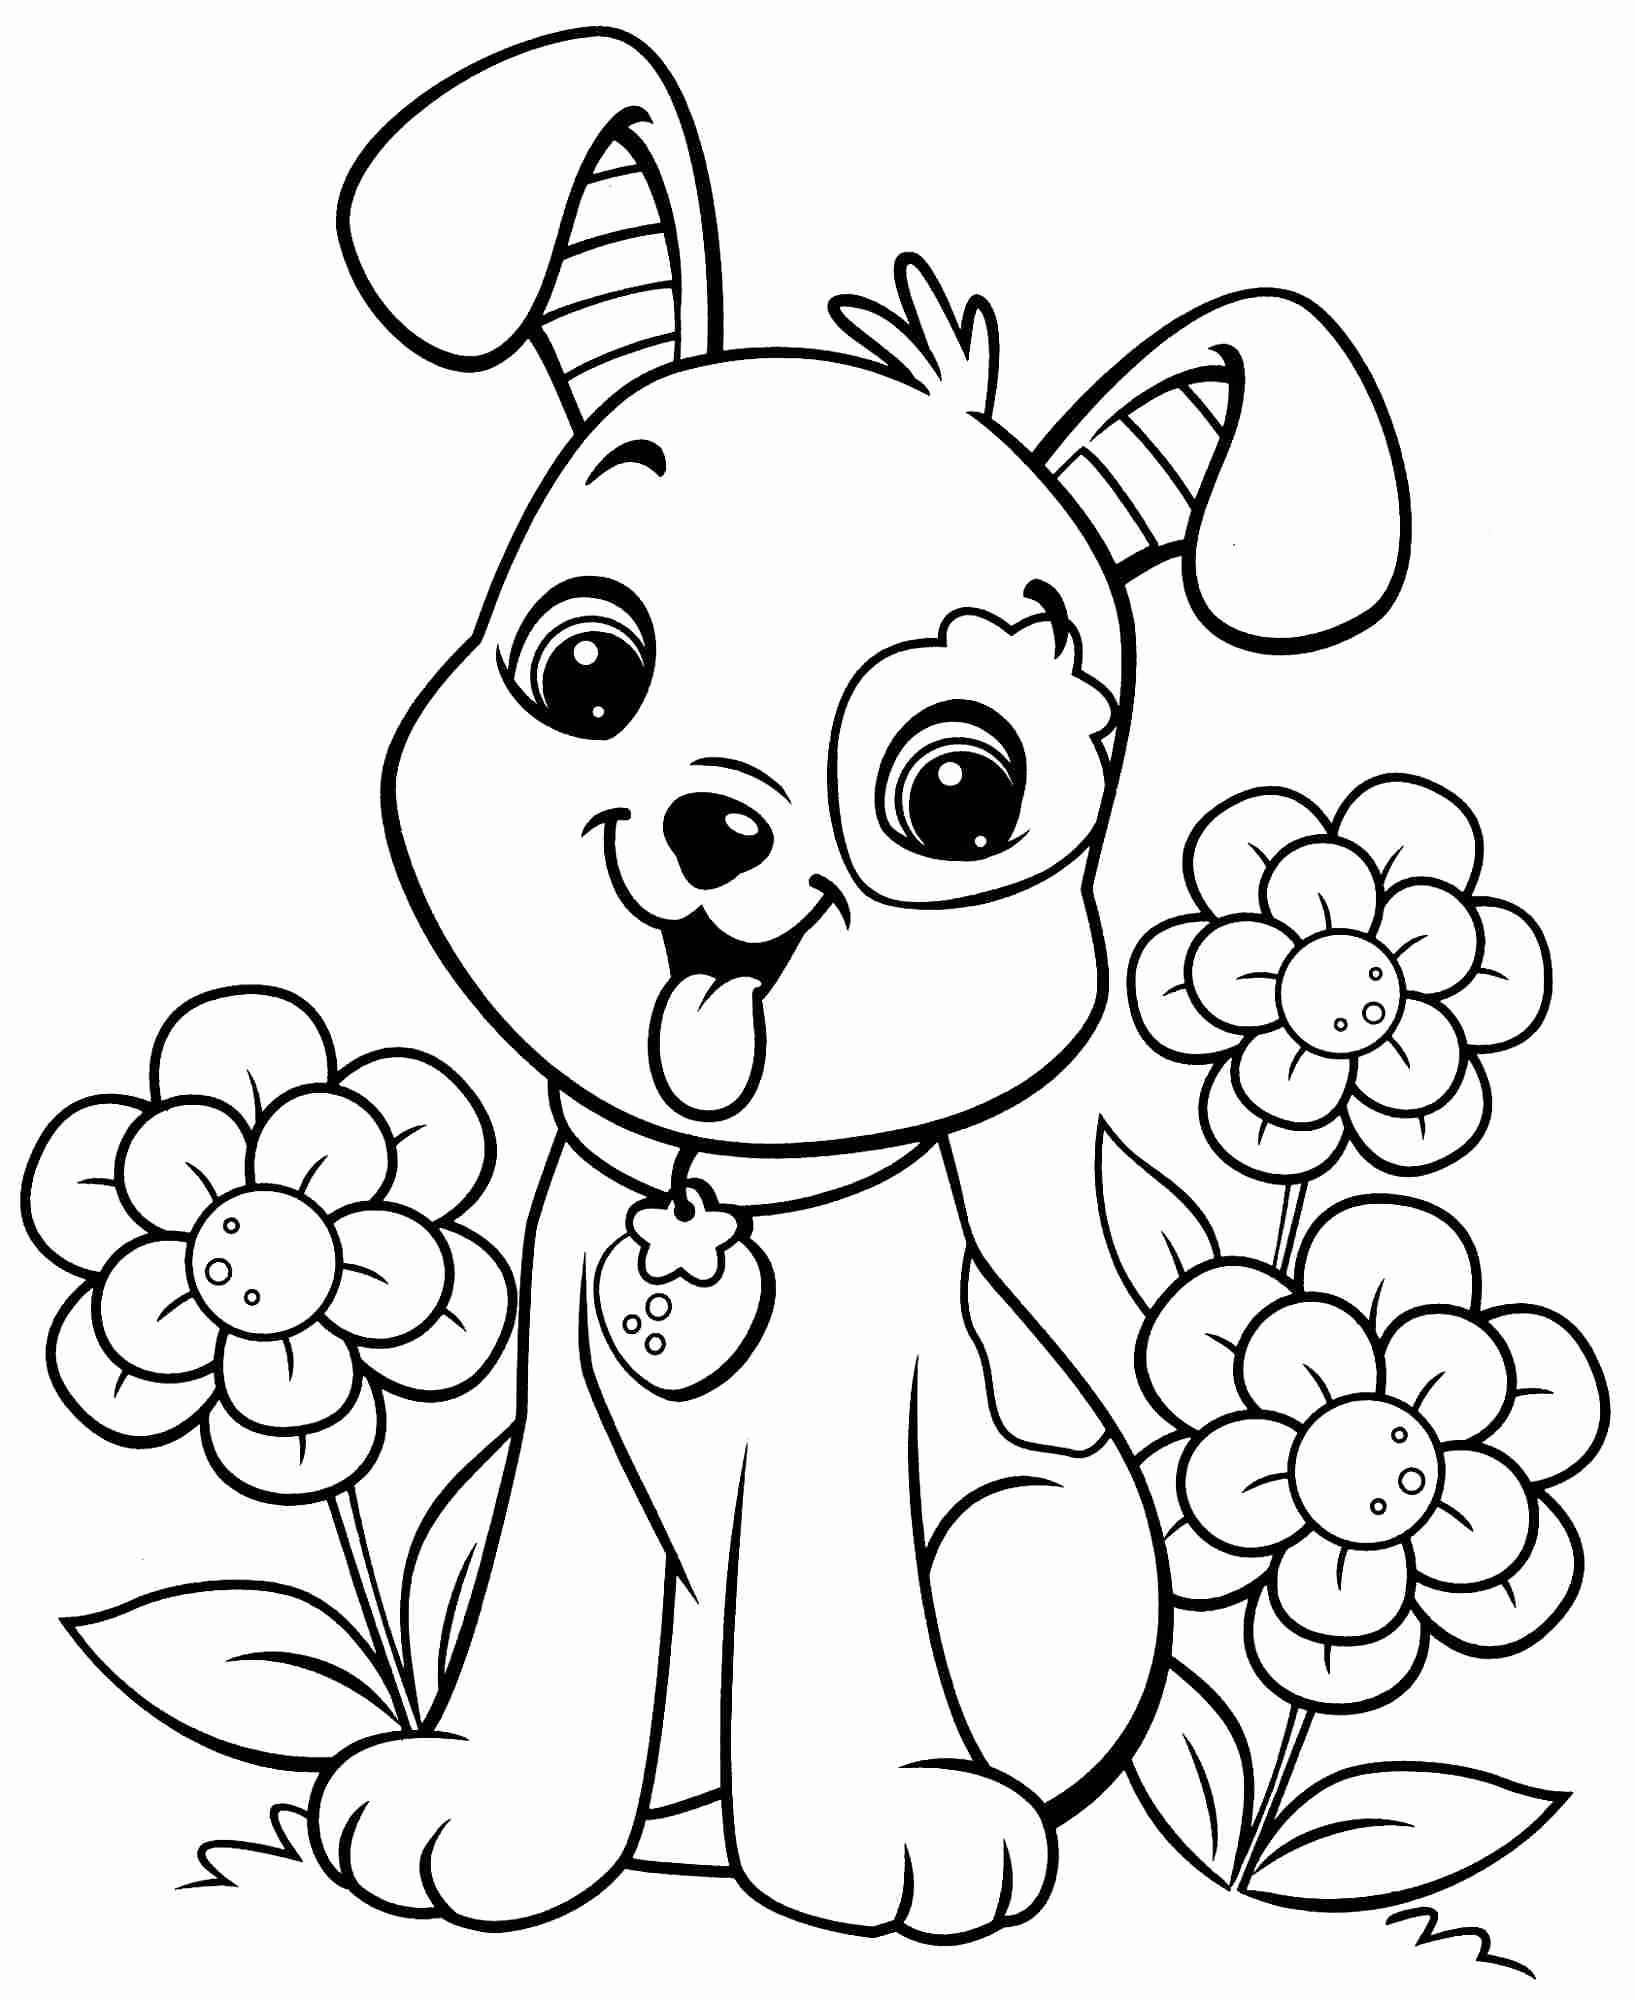 large animal coloring pages easy coloring pages large butterfly butterfly coloring pages coloring animal large